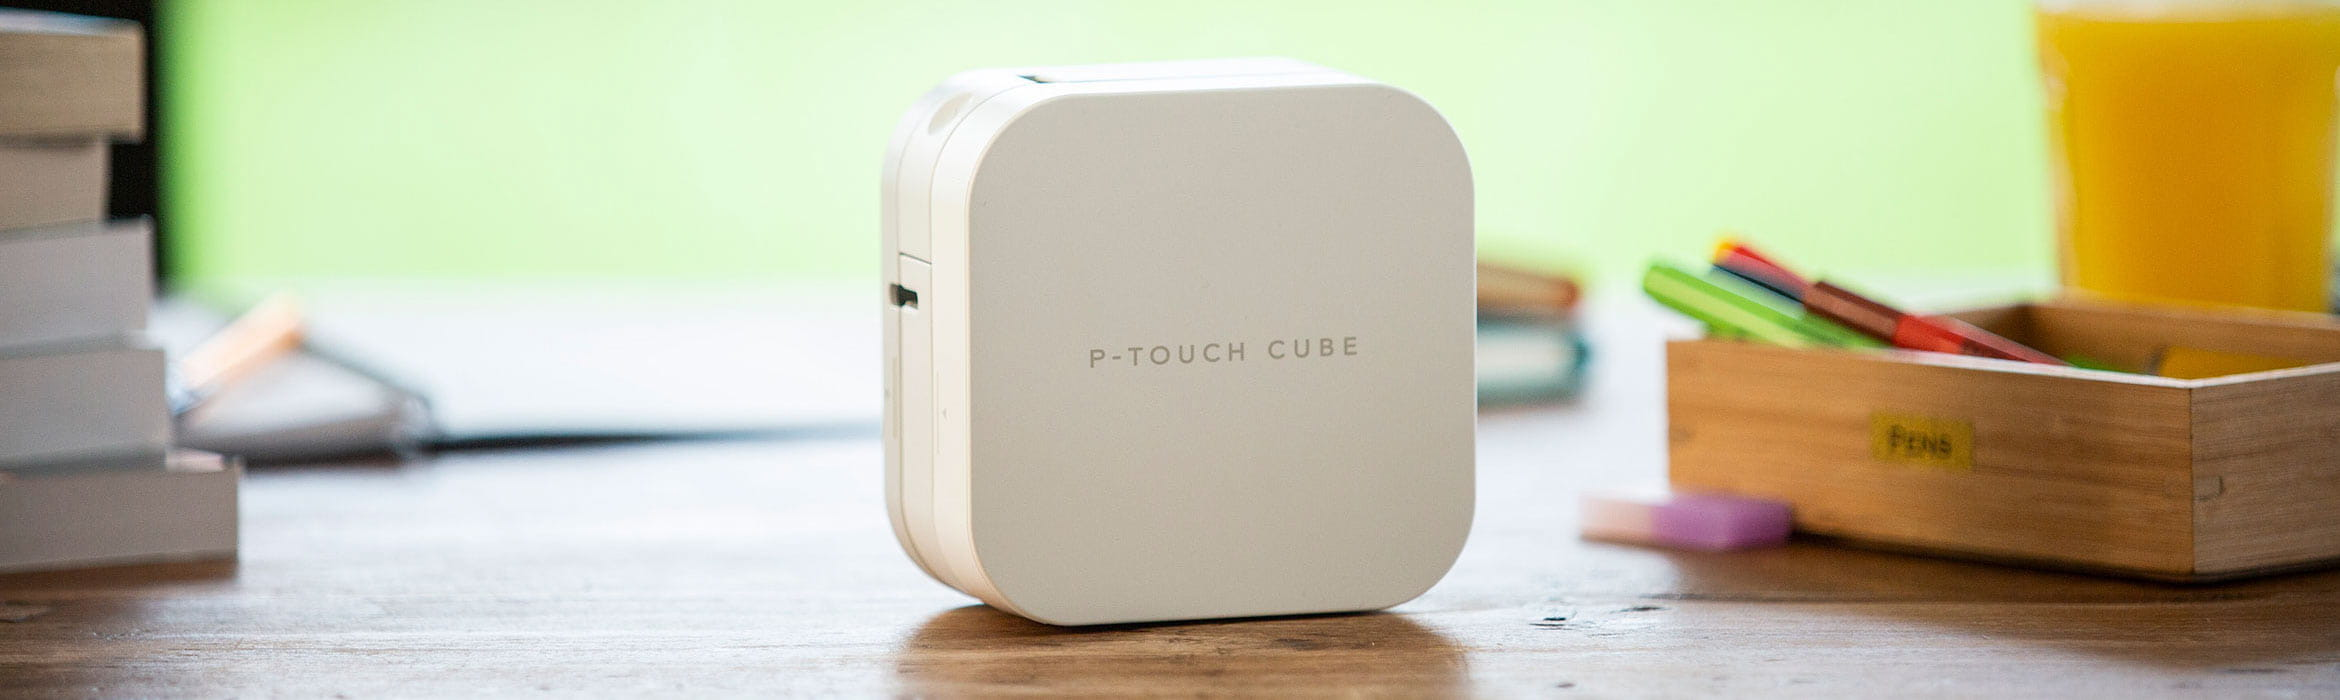 p-touch-CUBE-for-labelling-page